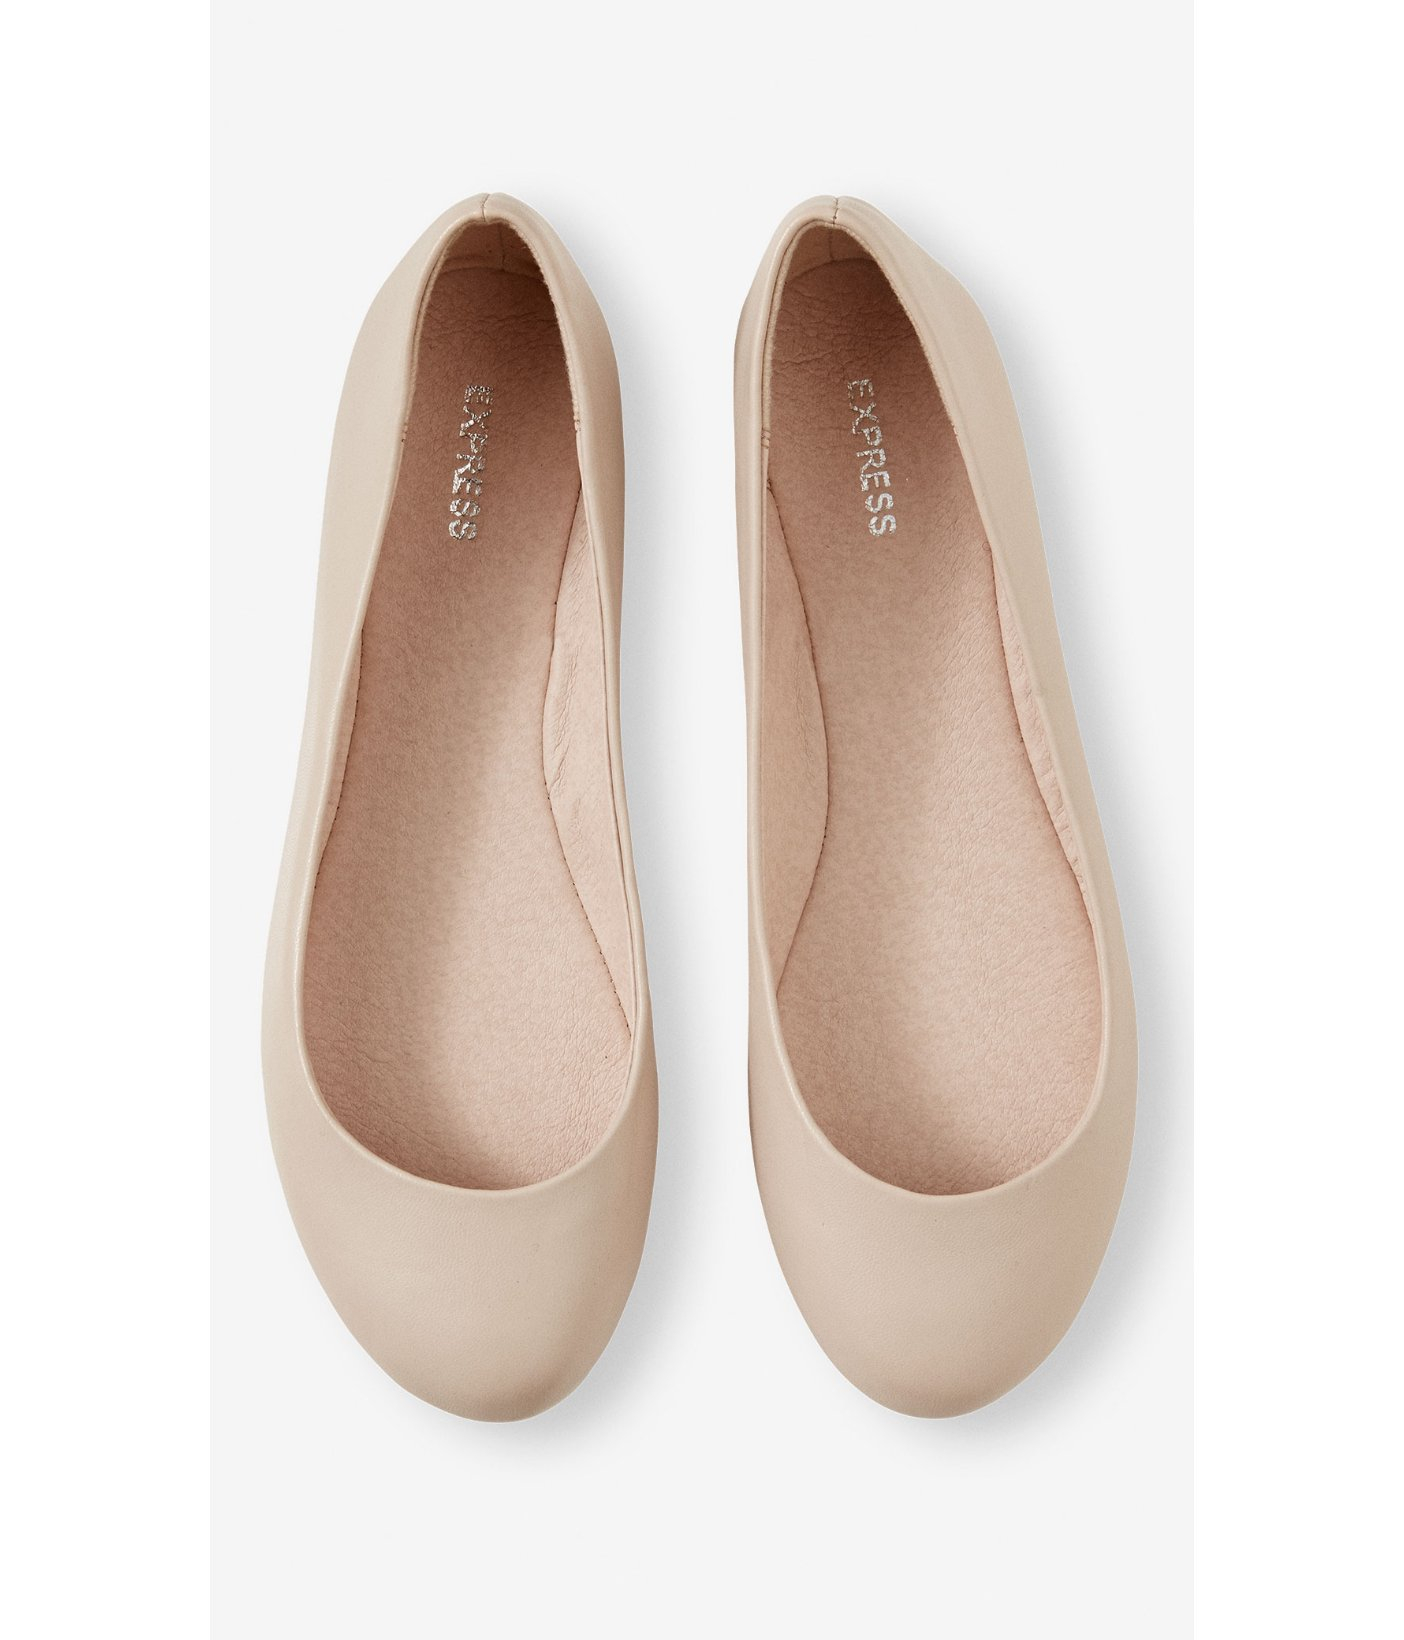 Round Toe Ballet Flat in Nude Blush